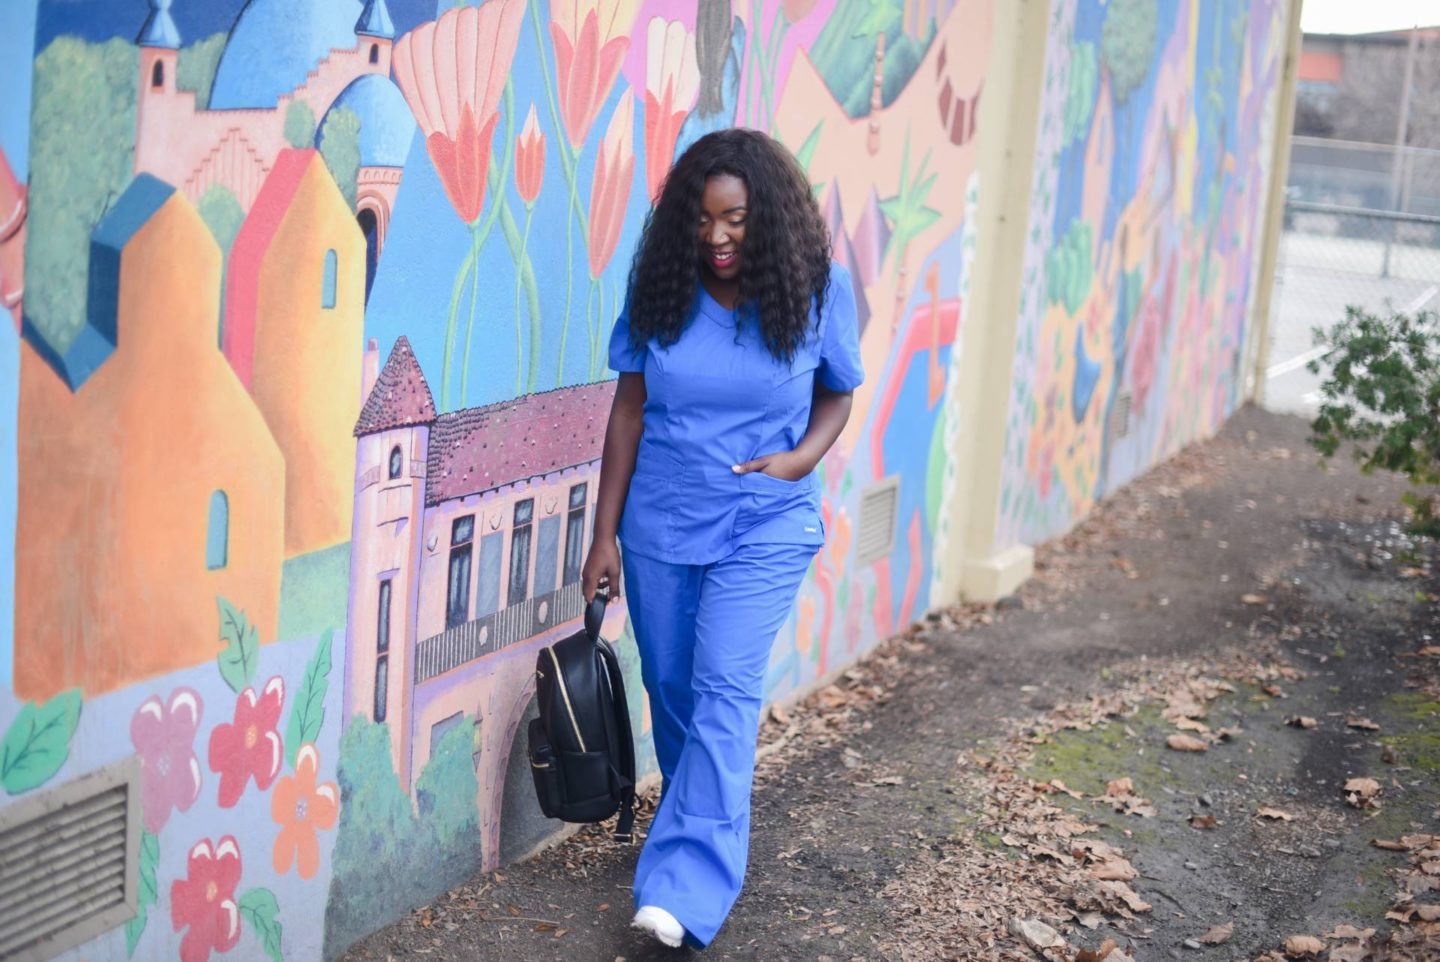 my nursing career landau scrubs ruthie ridley blog when i was 16 years old i knew that i was going to be a nurse and n culture it s very common to know what you want to do at a very